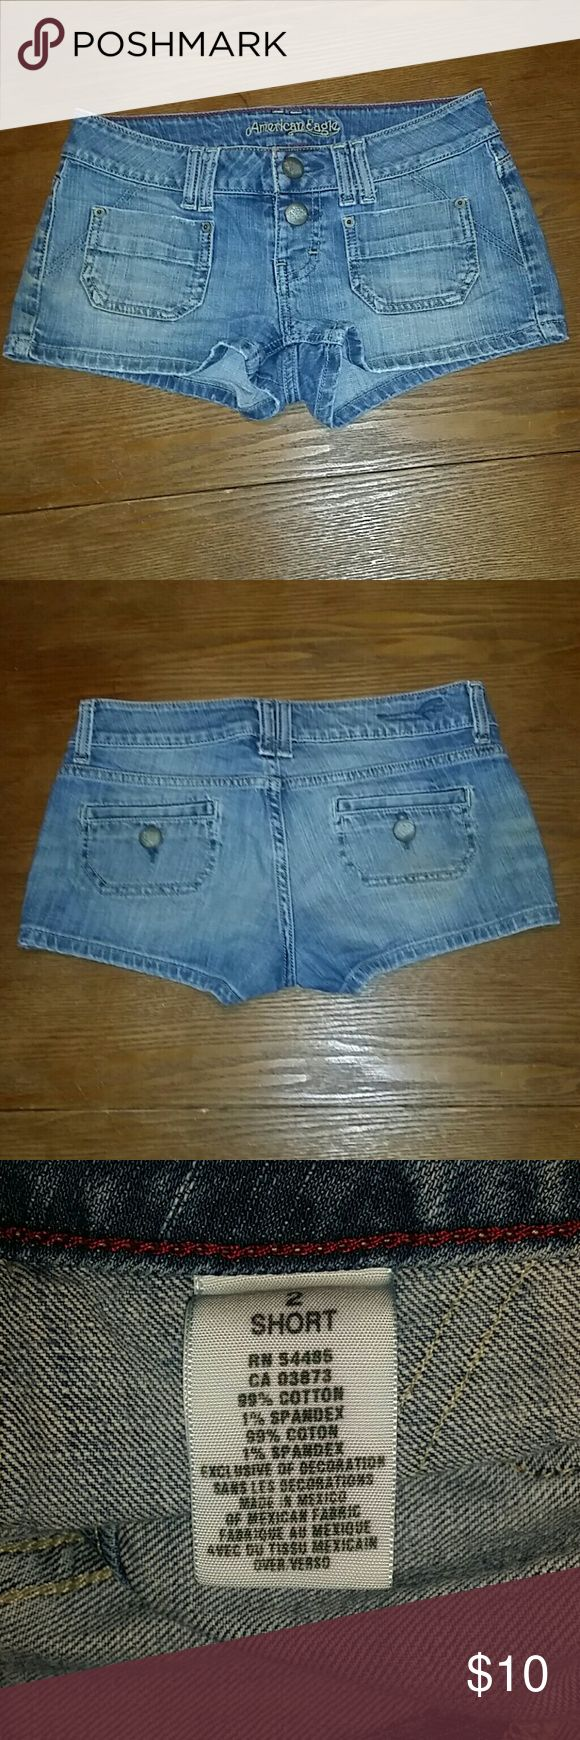 AE Ameican Eagle 2 Short Denim Button Fly Shorts Factory faded short shorts by AE. Size 2. Lowrise. Short 2.25 inch inseam. 30 inch waist. Belt loops, front & back pockets, button fly. Distressed hem. American Eagle Outfitters Shorts Jean Shorts